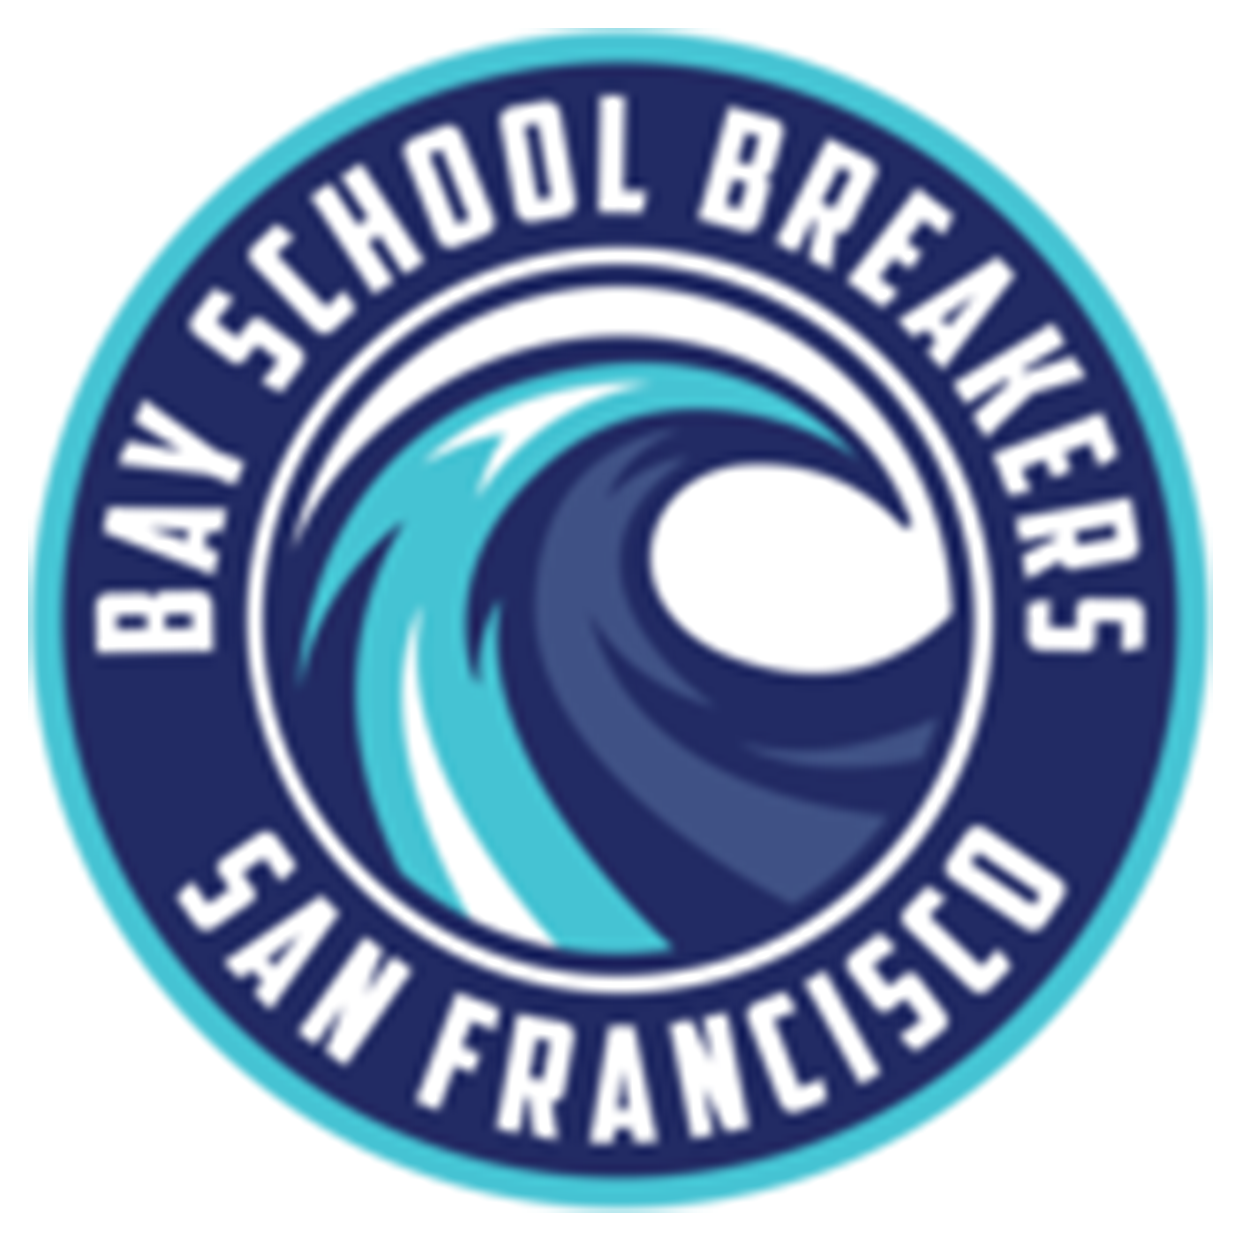 The Bay School Breakers